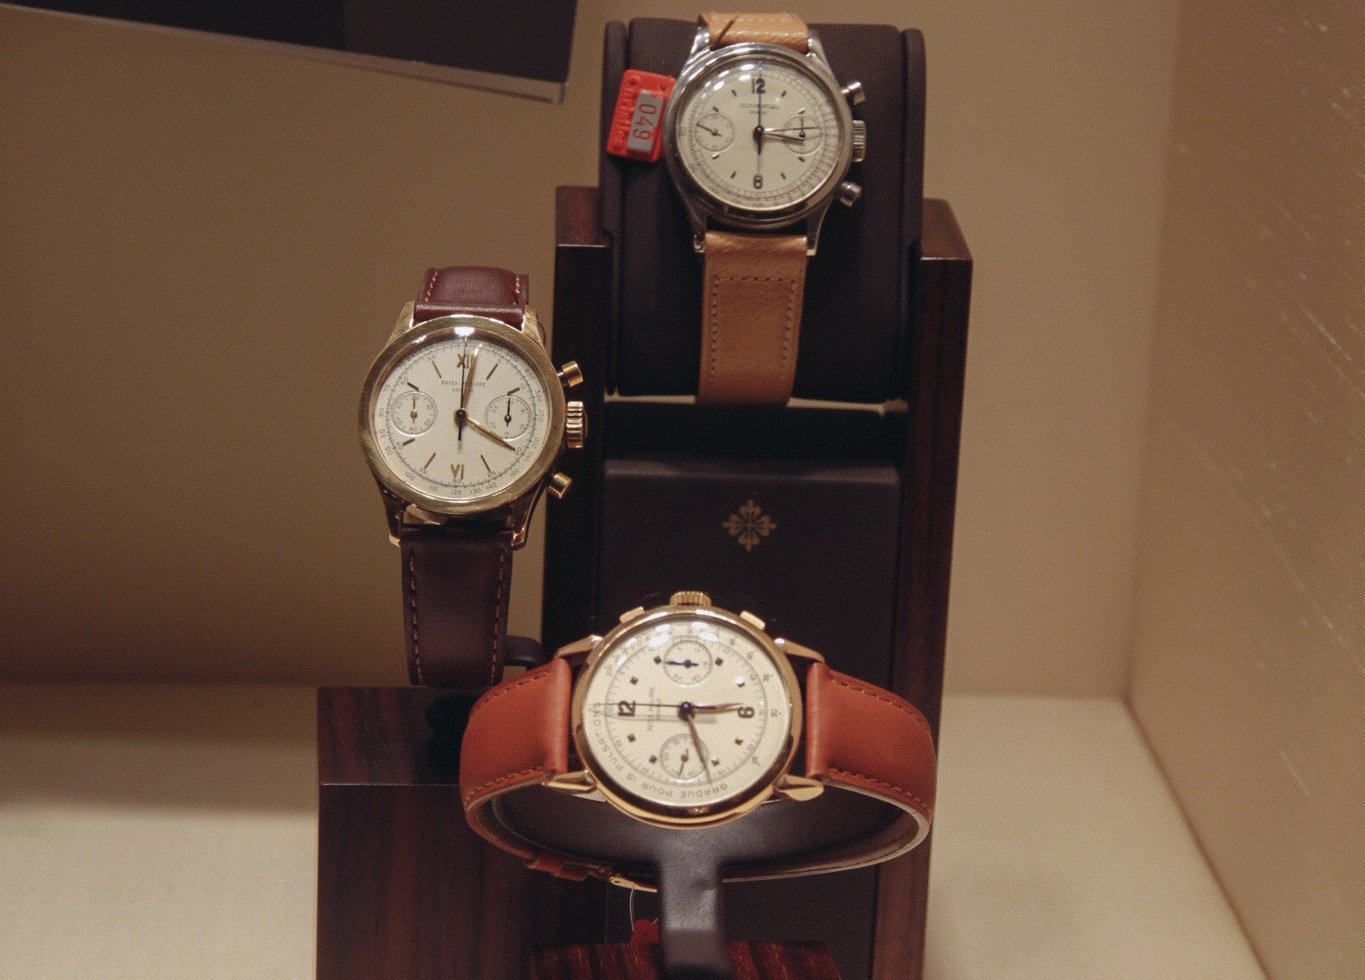 patek-philippe-christies-verga-milano-auction-0-100_20